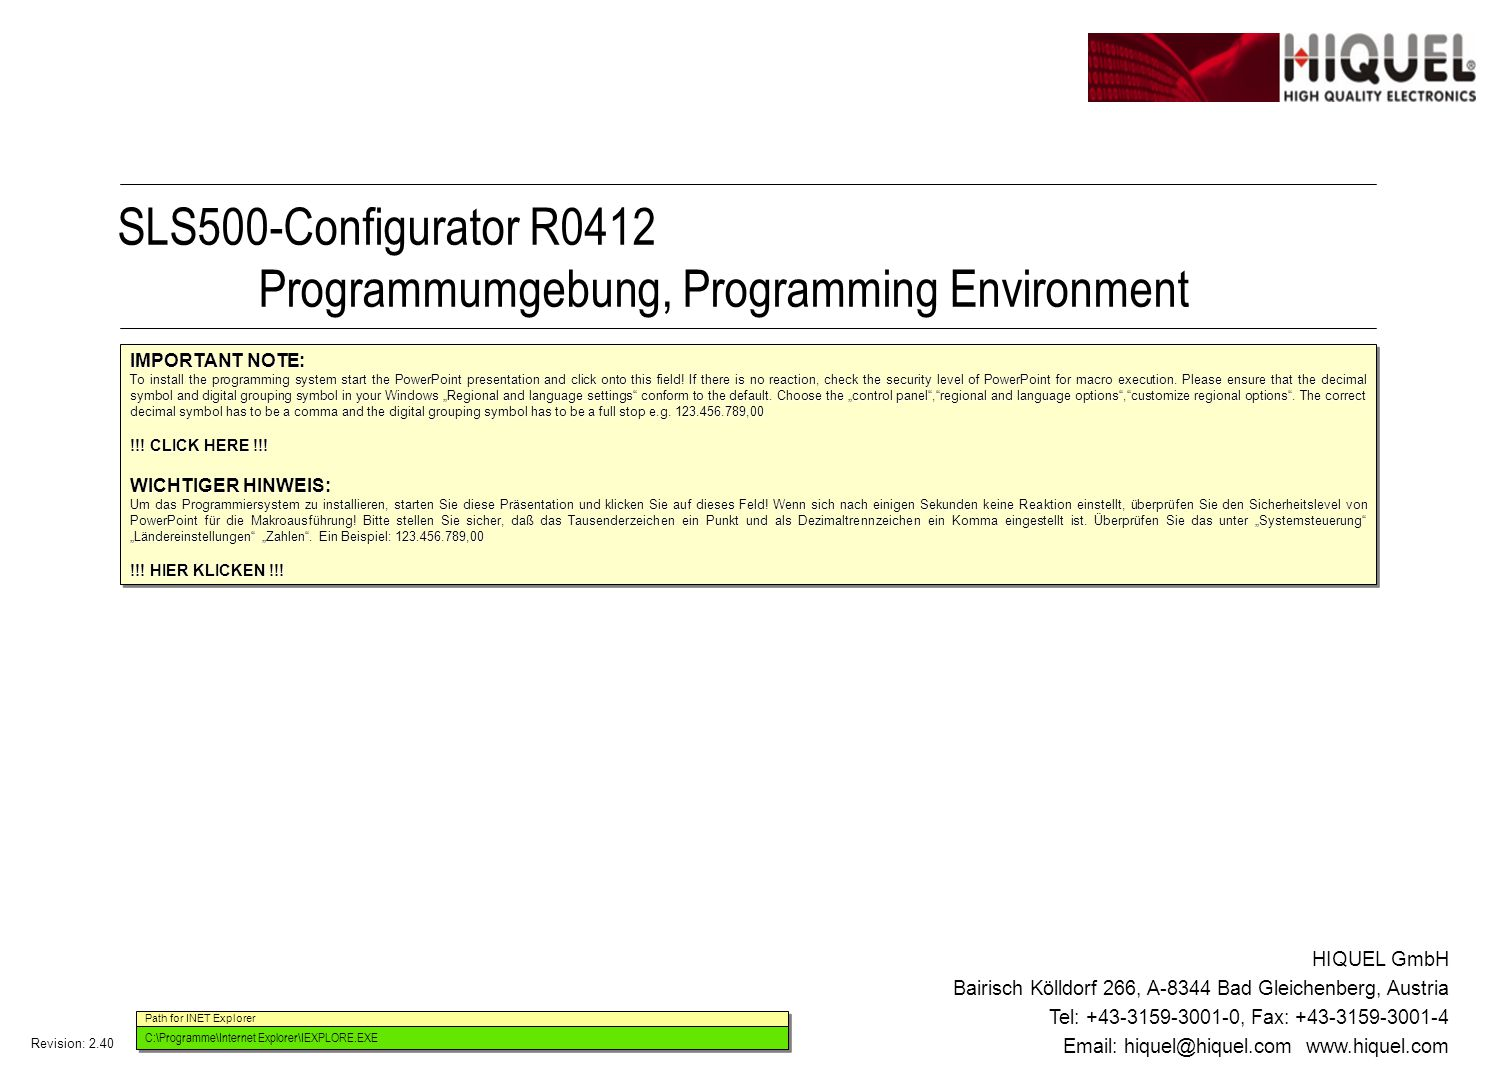 Revision: 2.40 Page 2 Title: Configuration Defining your configuration DI1: DI2: DI3: DI4: DI5: DI6: DI7: DI8: DO1: DO2: DO3: DO4: DO5: DO6: AI1: AI2: AI3: AI4: POTI1: POTI2: SLS500-R